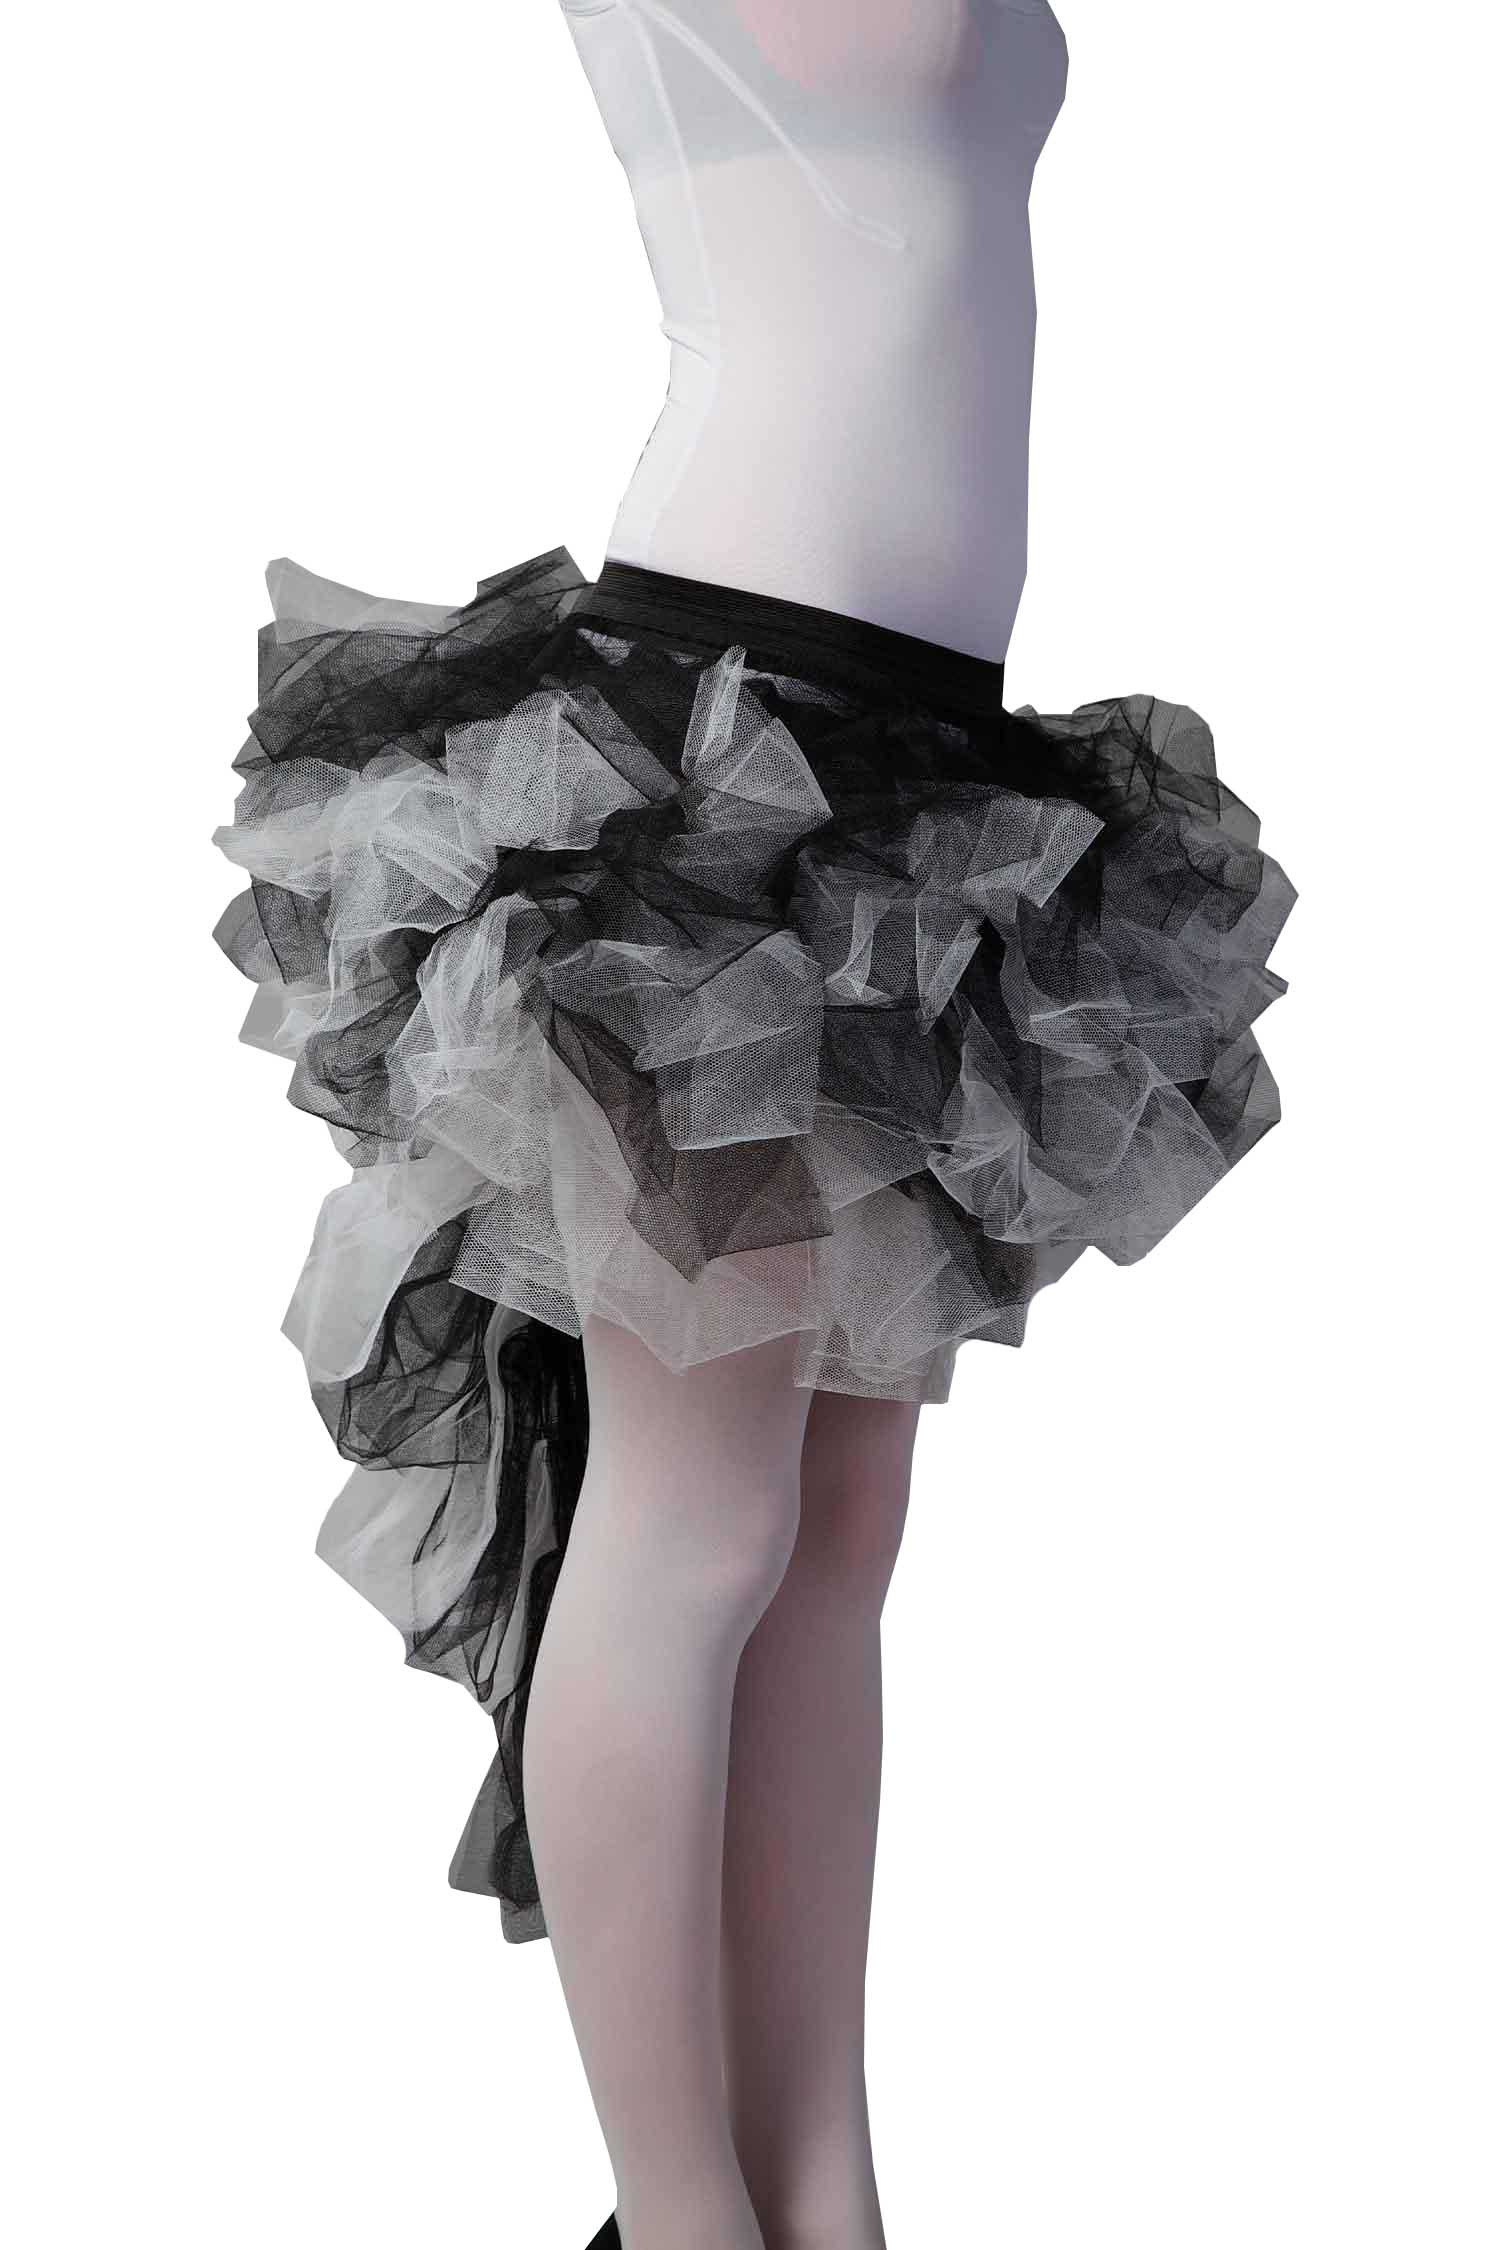 Crazy Chick Long Tail Burlesque Black And White Zombie TuTu Skirt